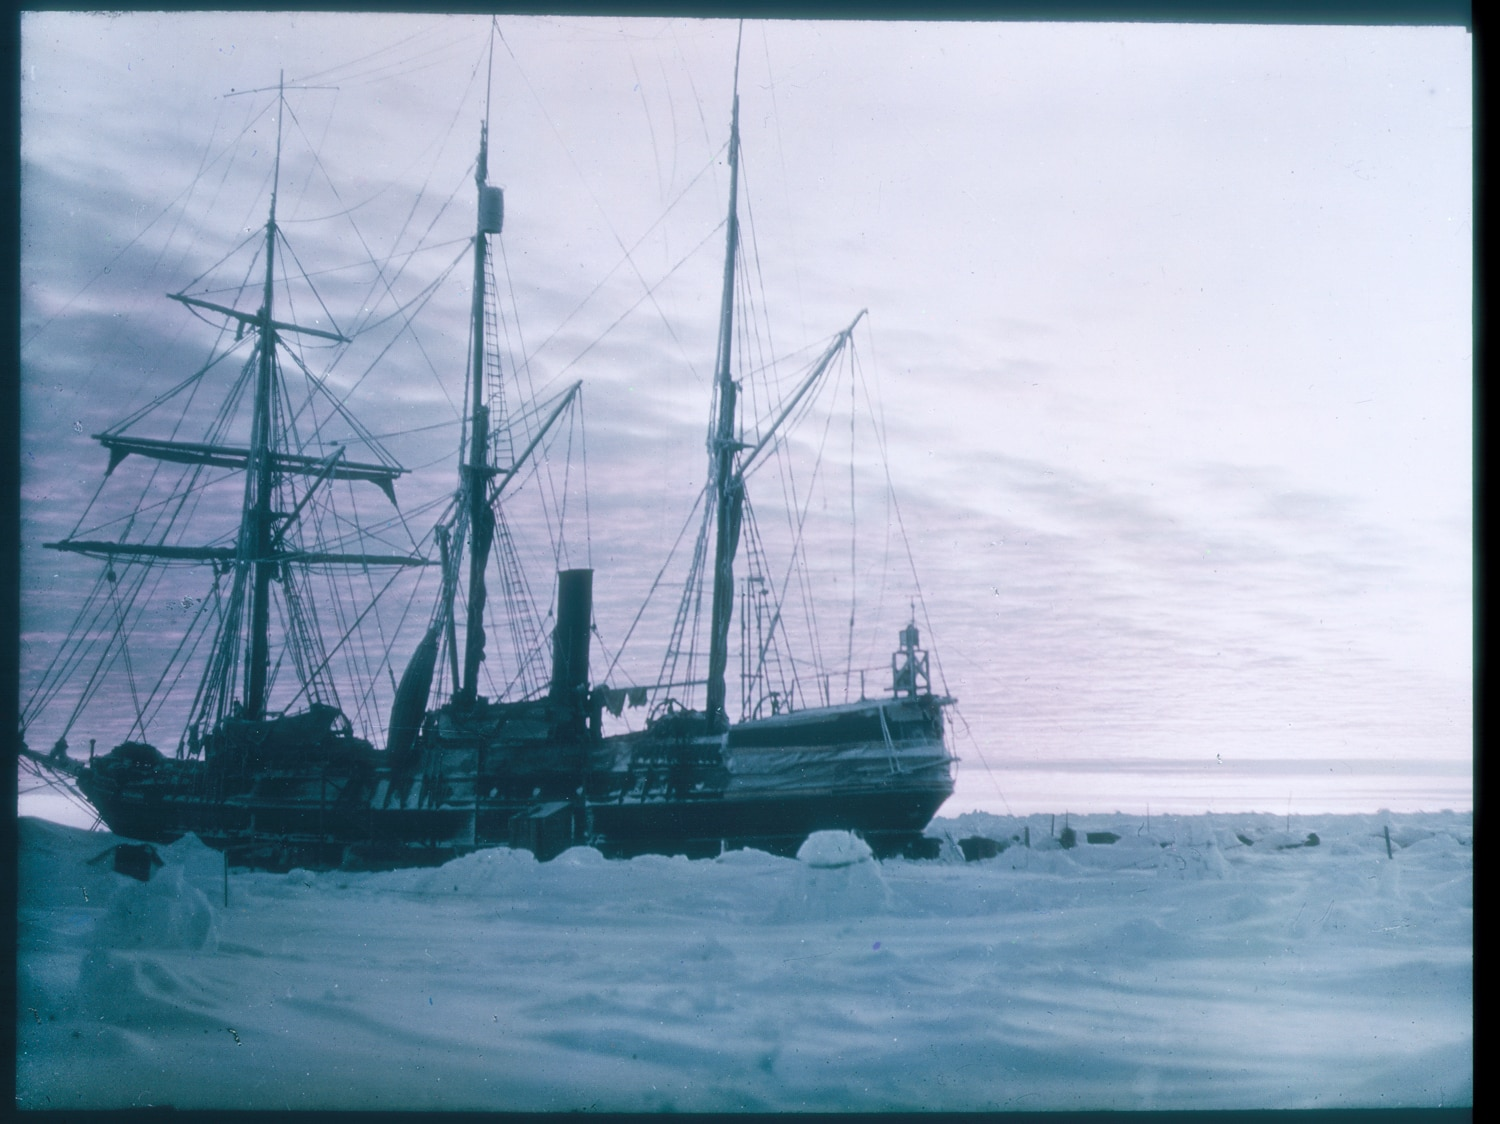 Photo of Esploratori al Polo Sud per recuperare il relitto dell'Endurance di Sir Shackleton